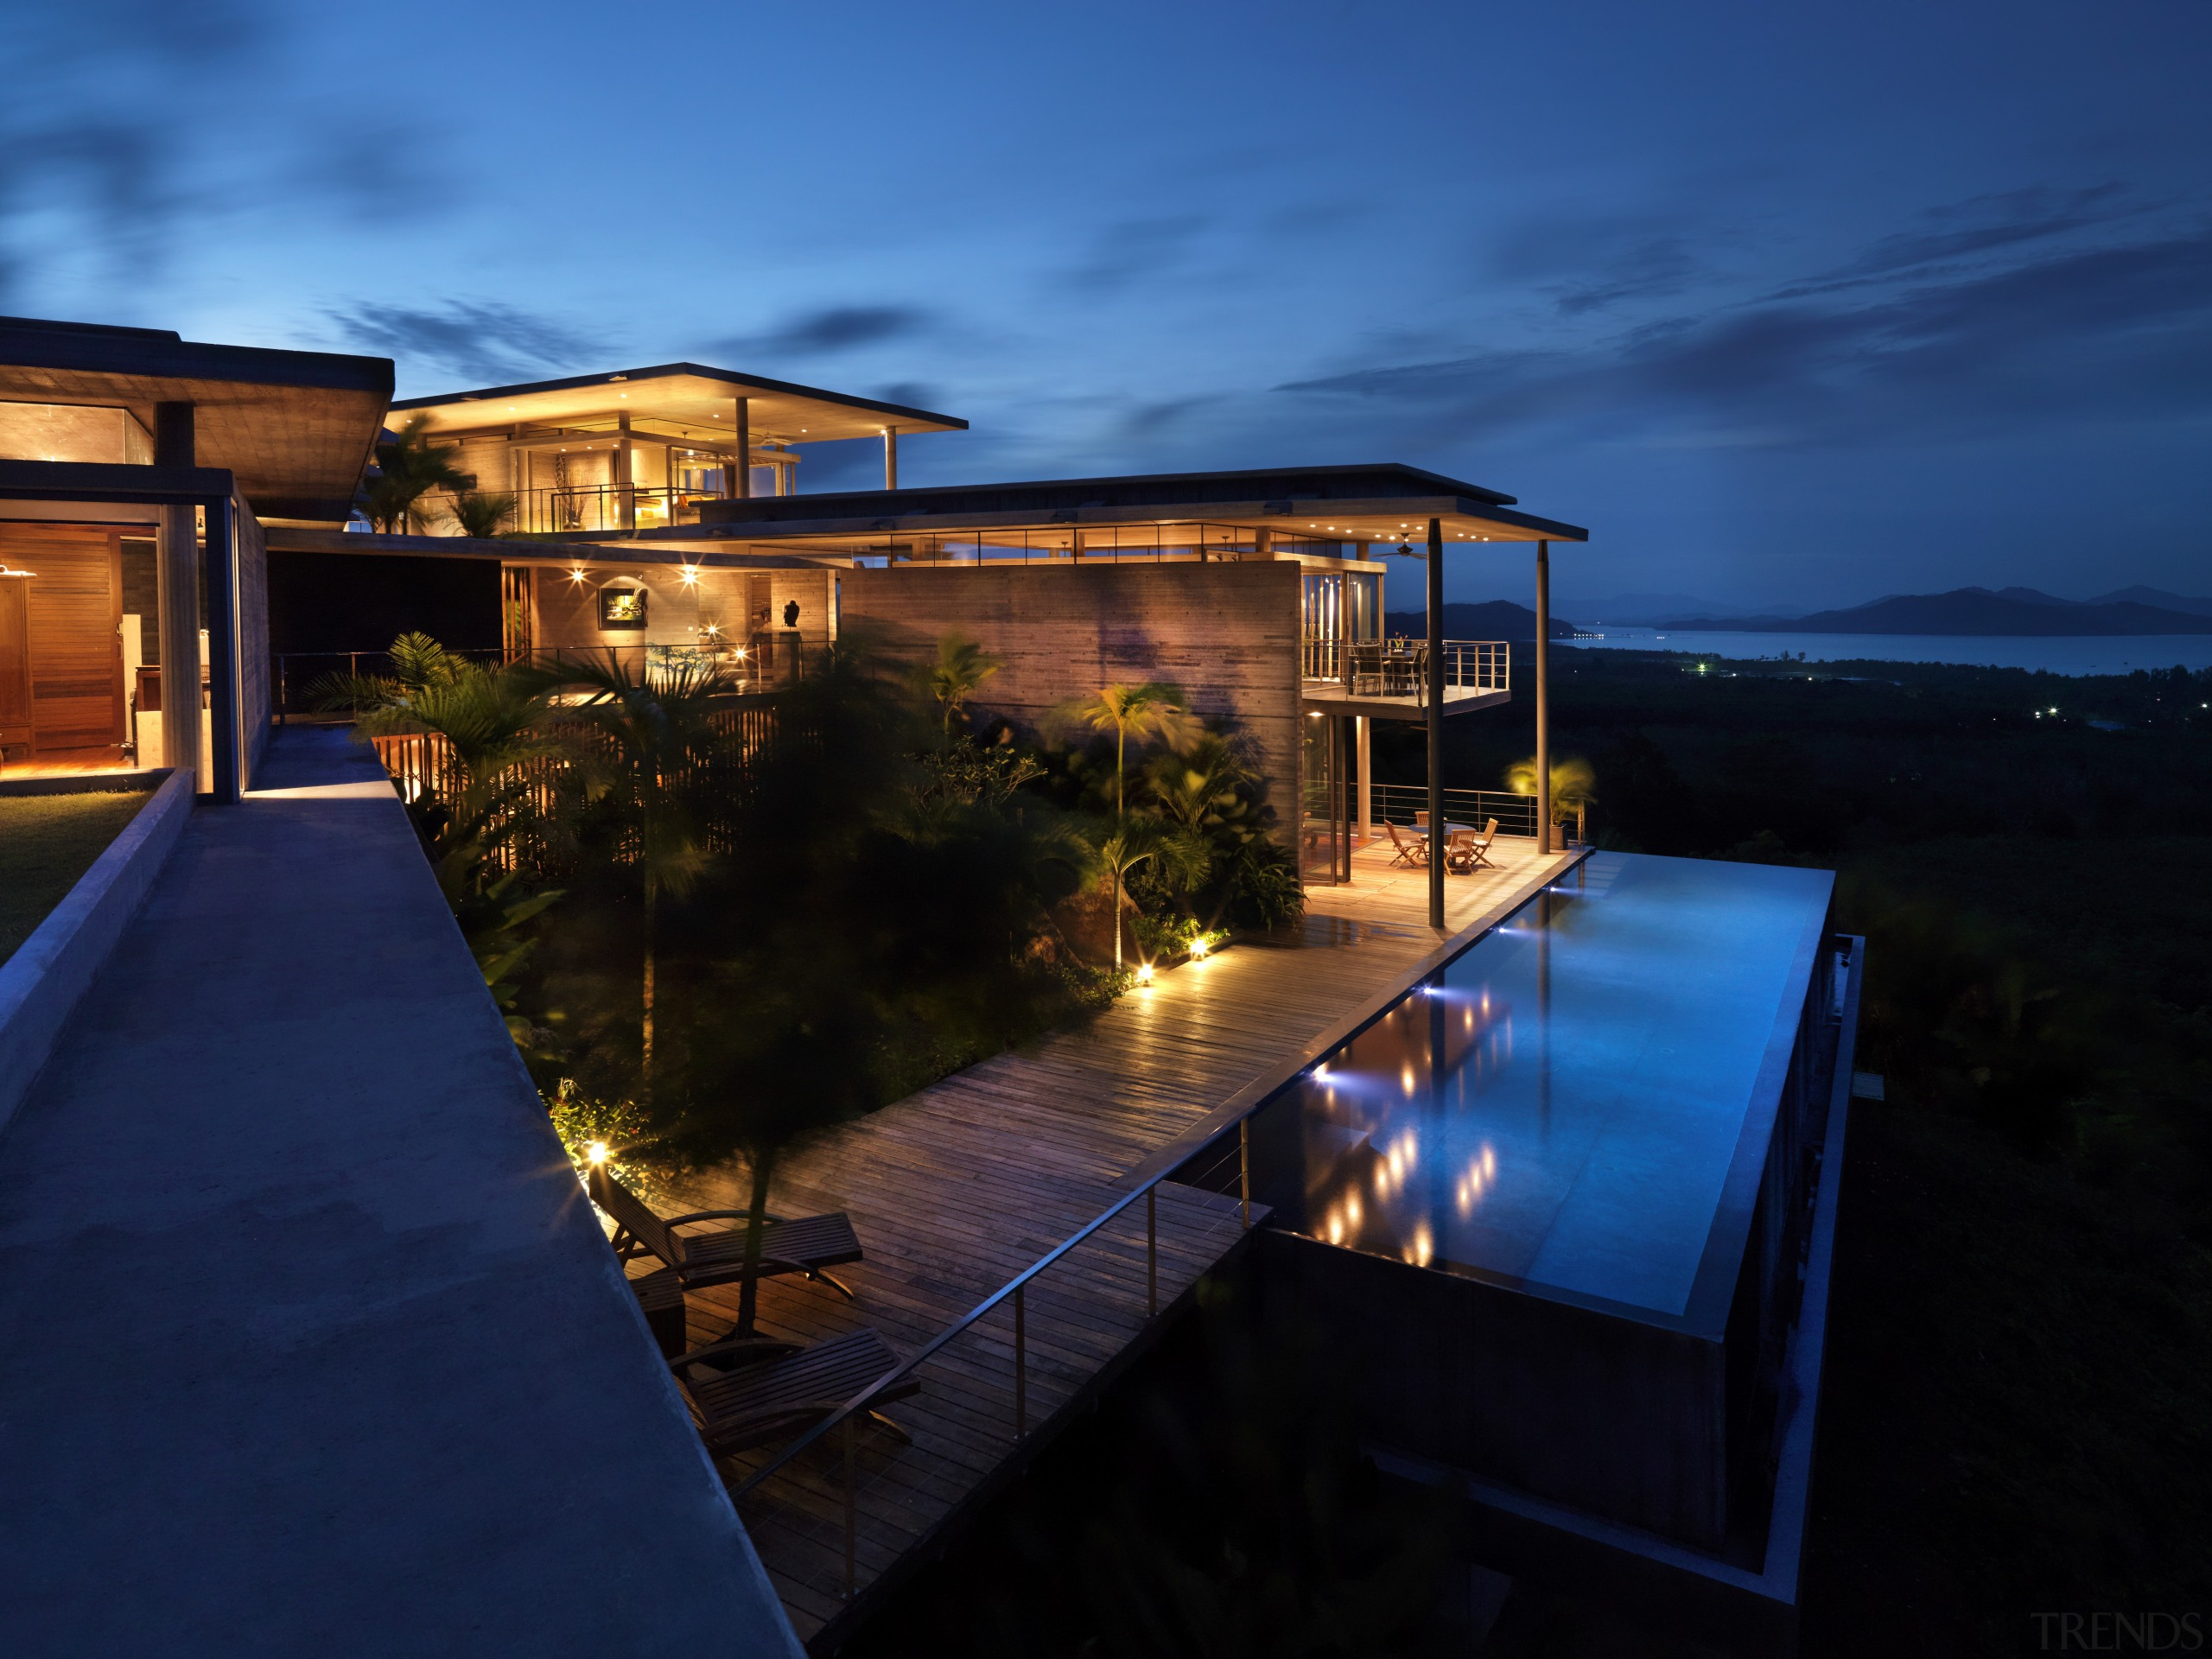 View of modern home designed by Design Unit architecture, dusk, estate, evening, home, house, landscape lighting, lighting, night, property, real estate, reflection, resort, sky, swimming pool, villa, water, blue